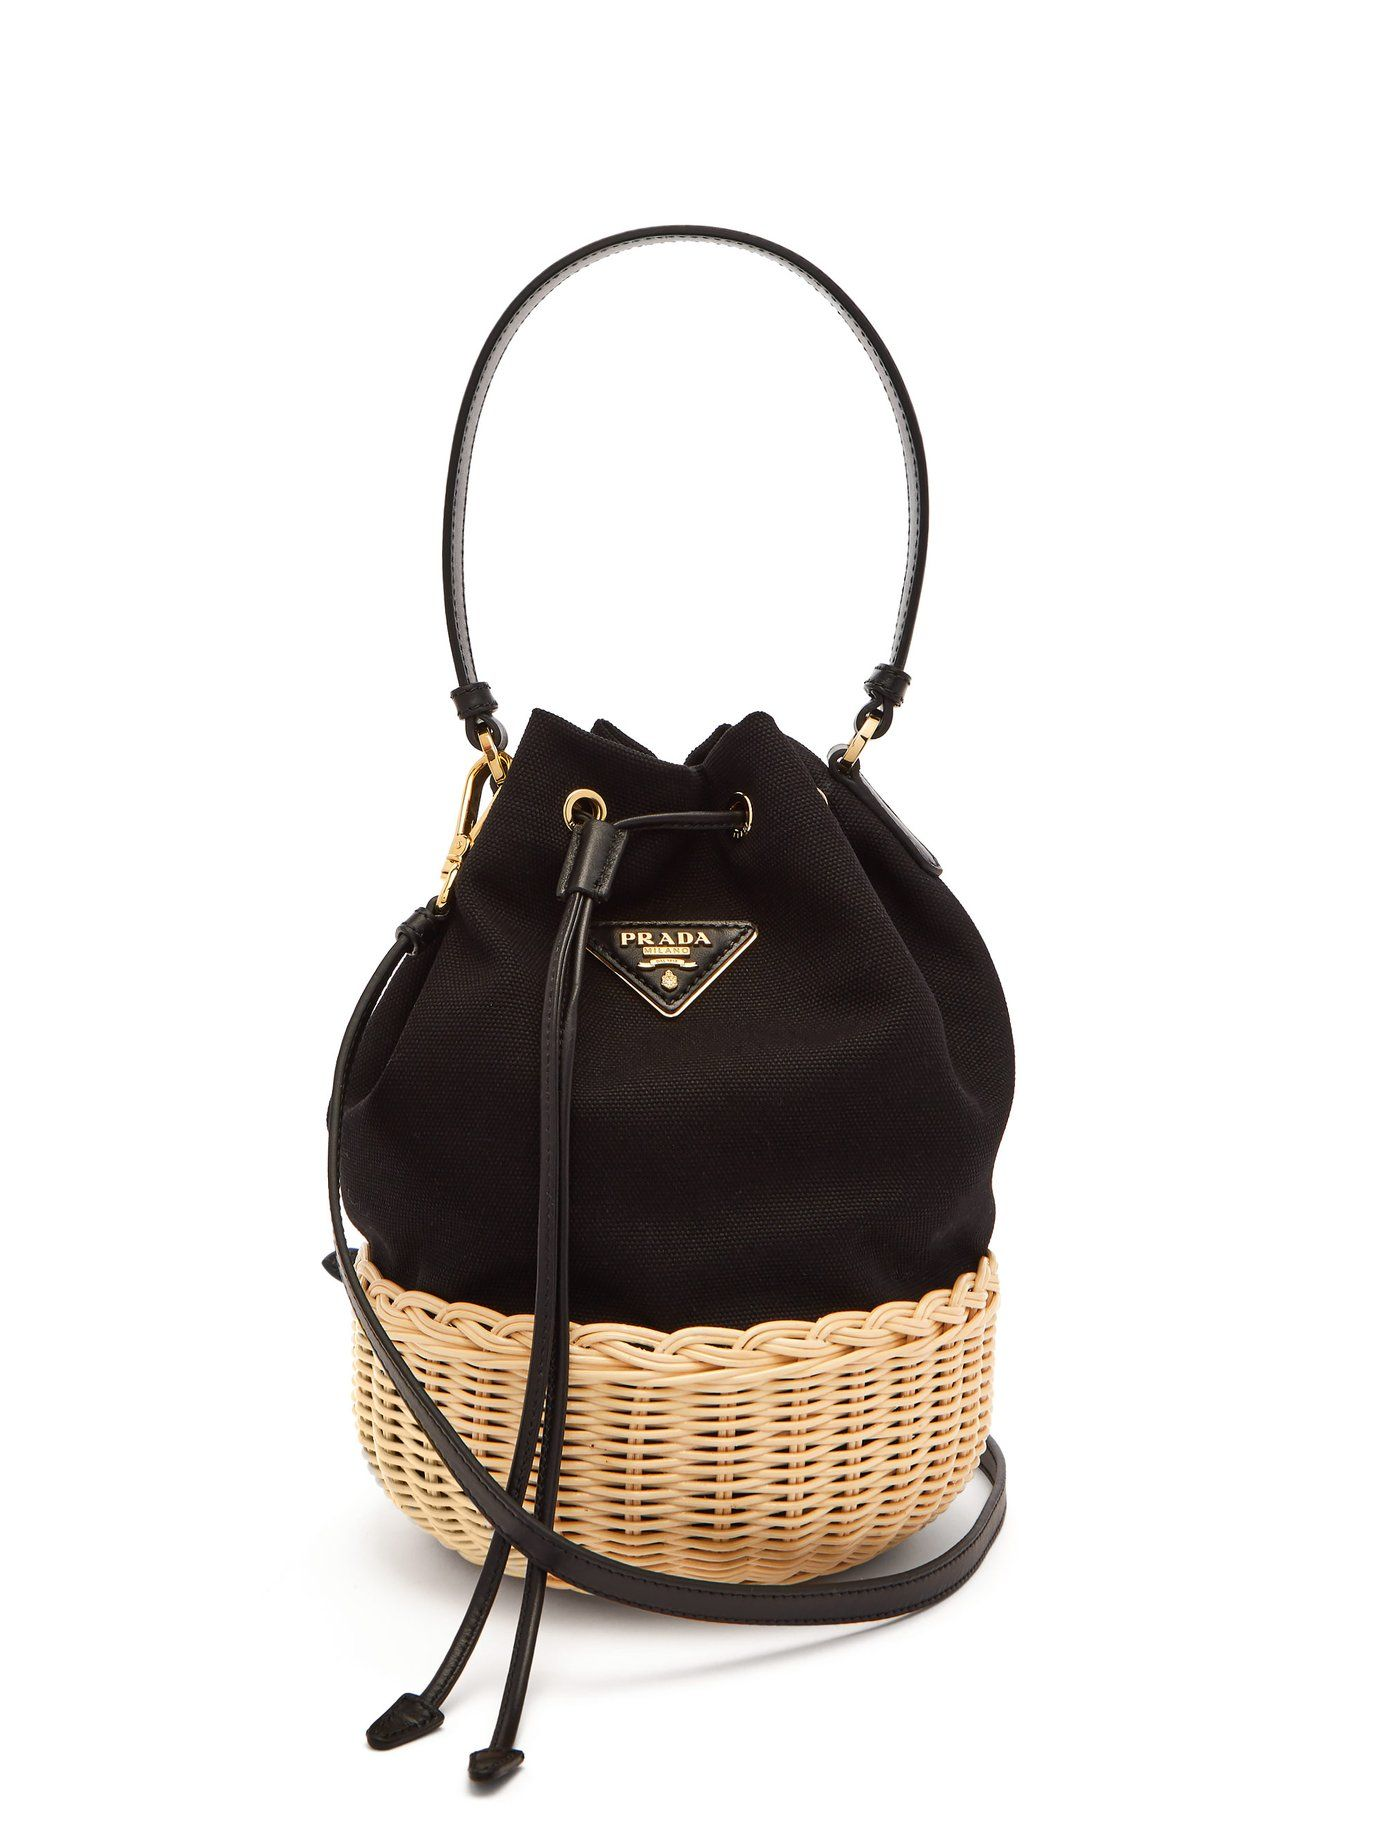 18c4ca7c5cdb Canvas and woven straw bucket bag